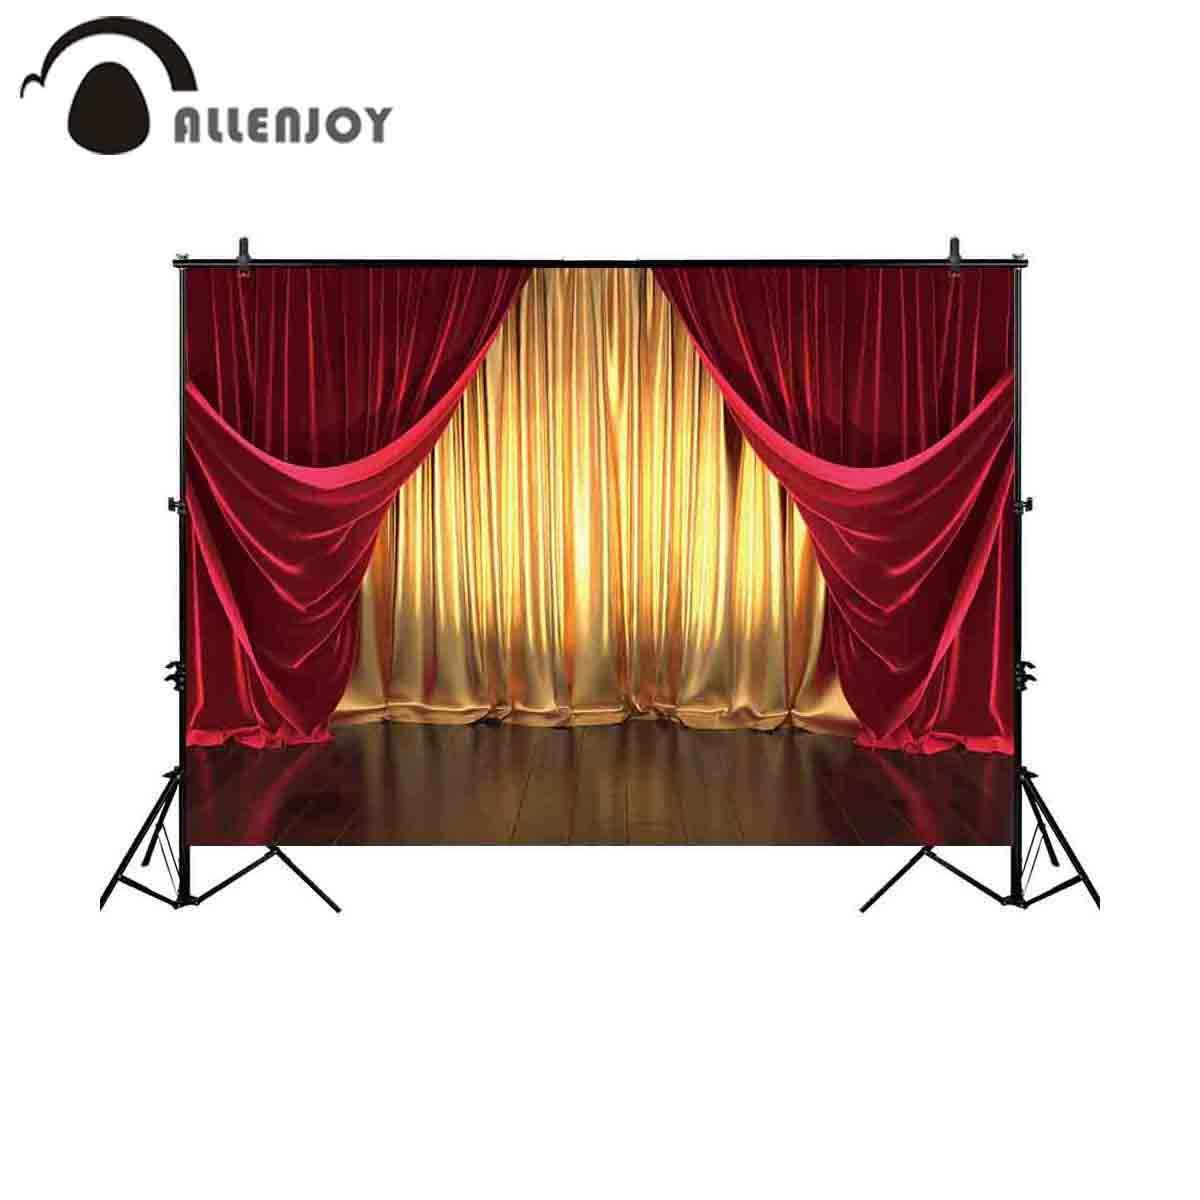 Allenjoy photography backdrop red curtain luxury stage golden theater background for photo studio shoot photobooth photocall new